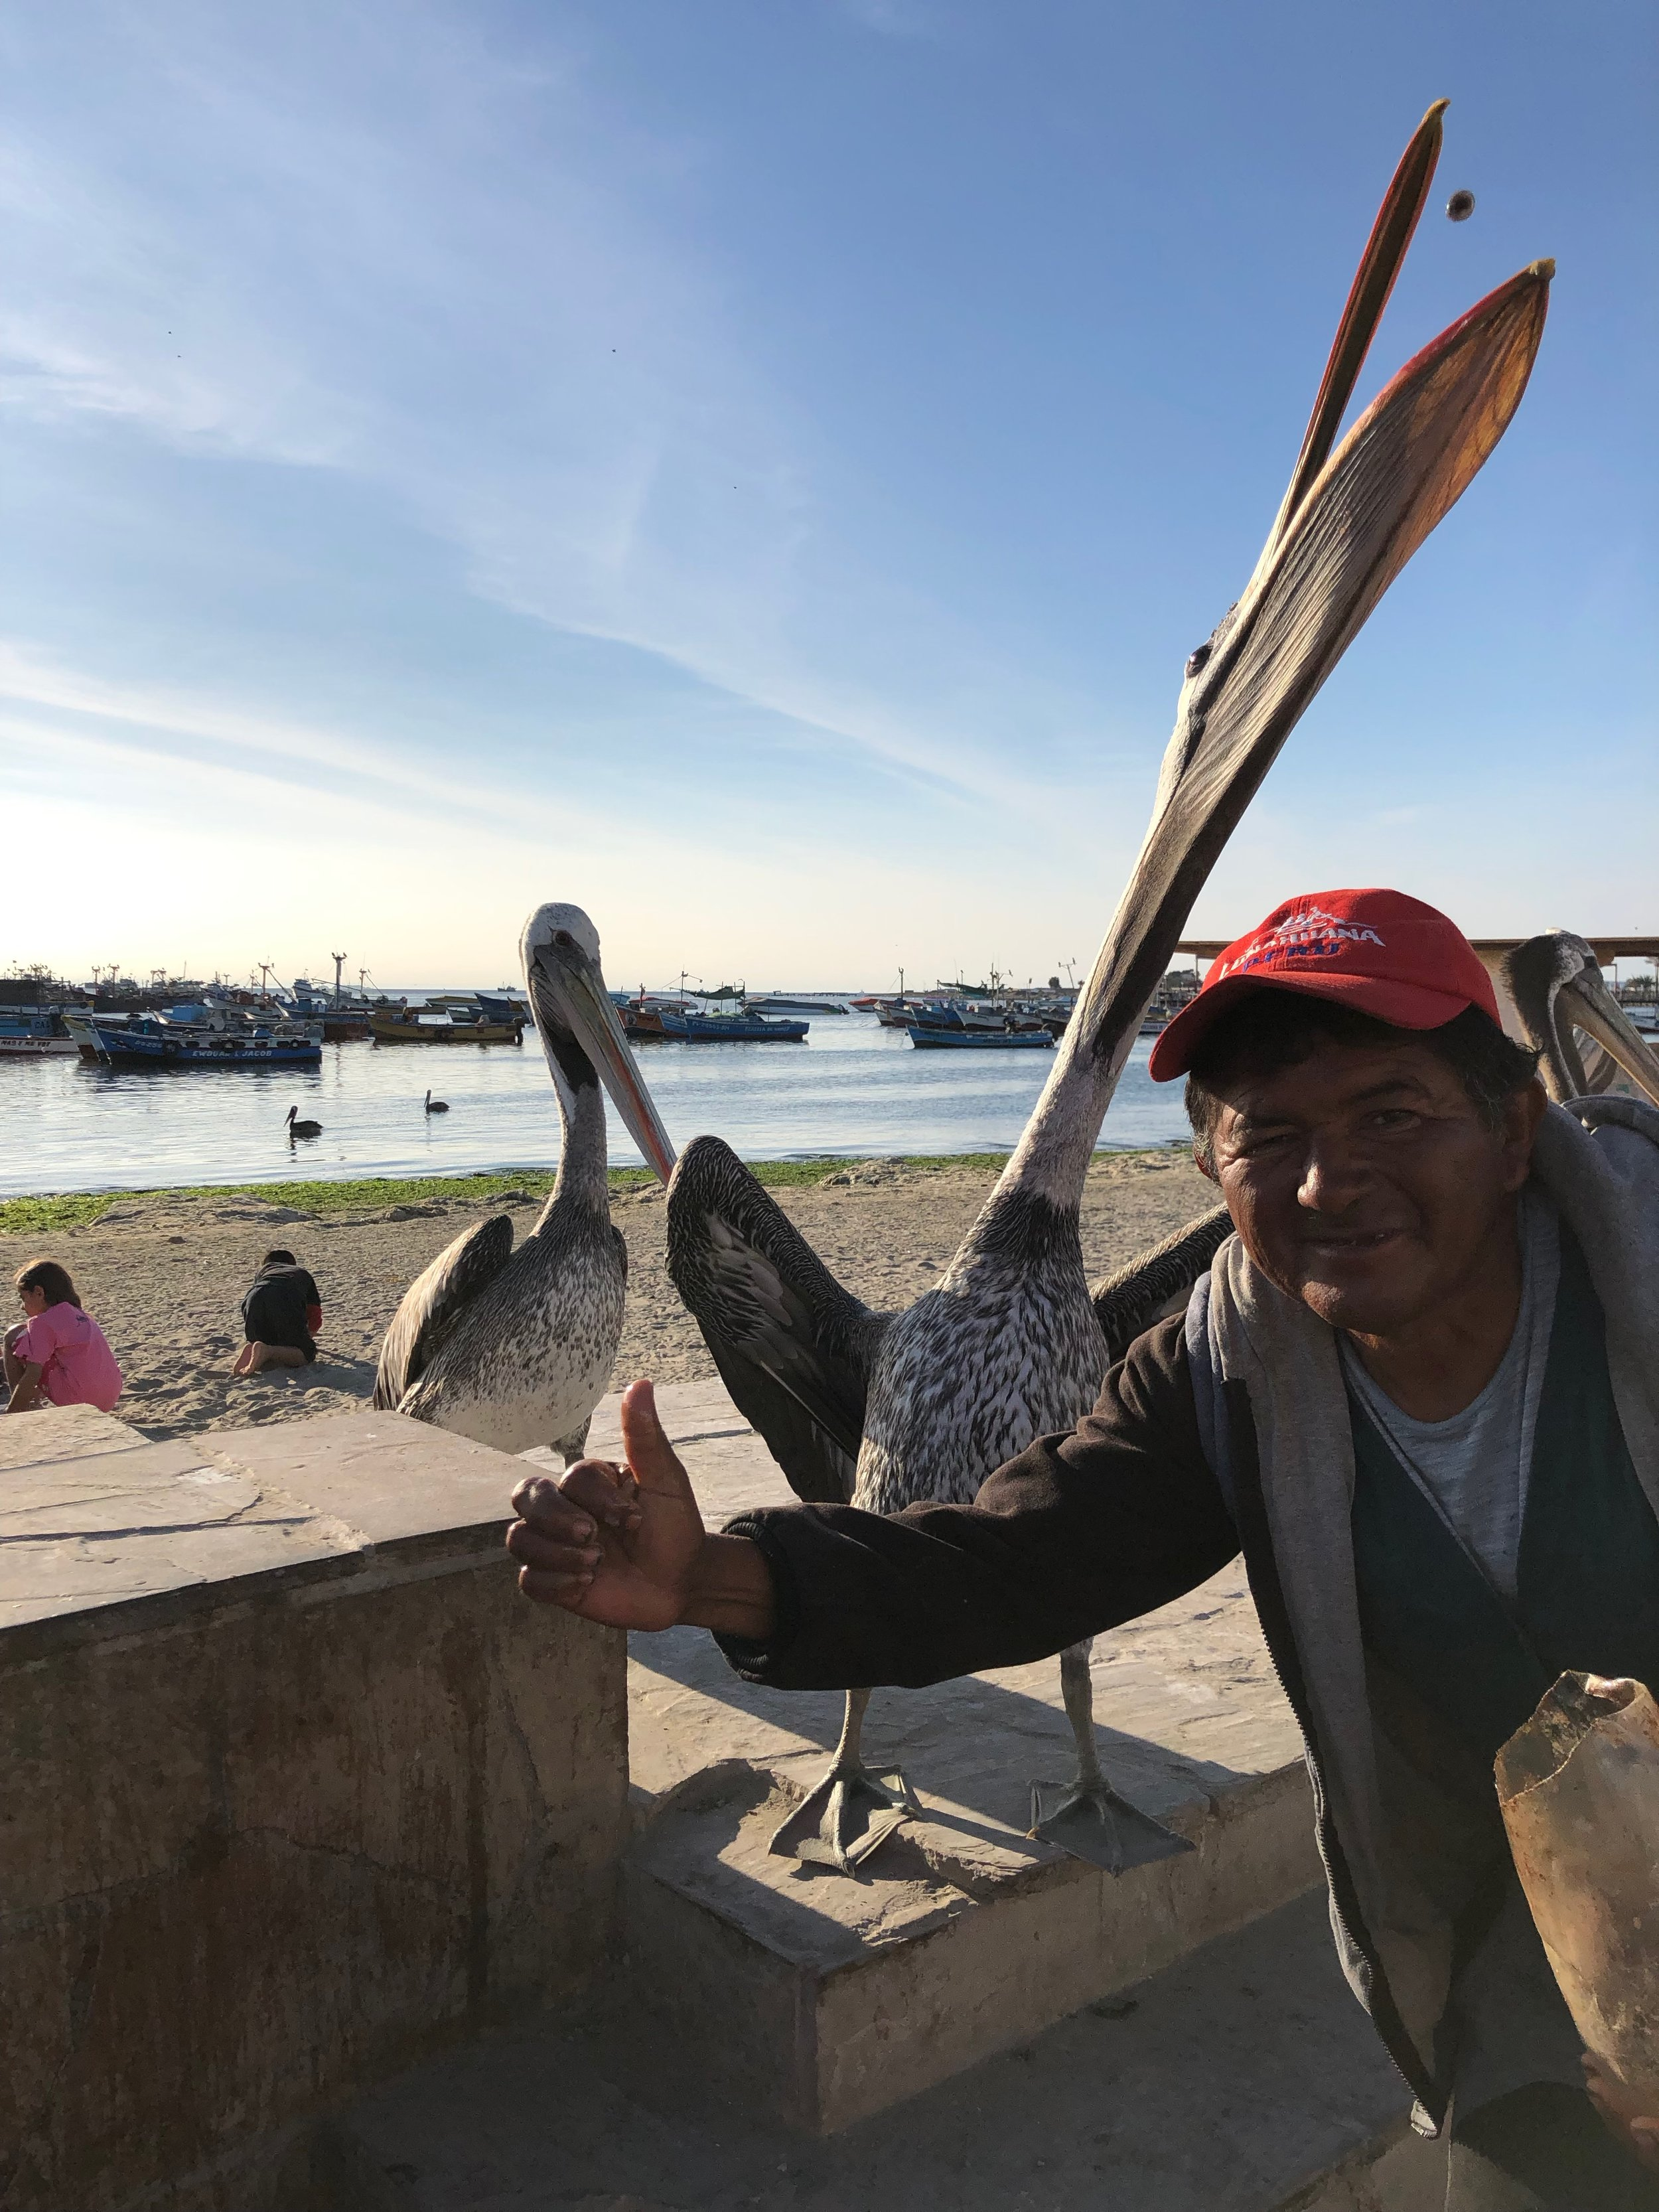 Man feeding pelicans to entertain tourists and solicit money for taking photos